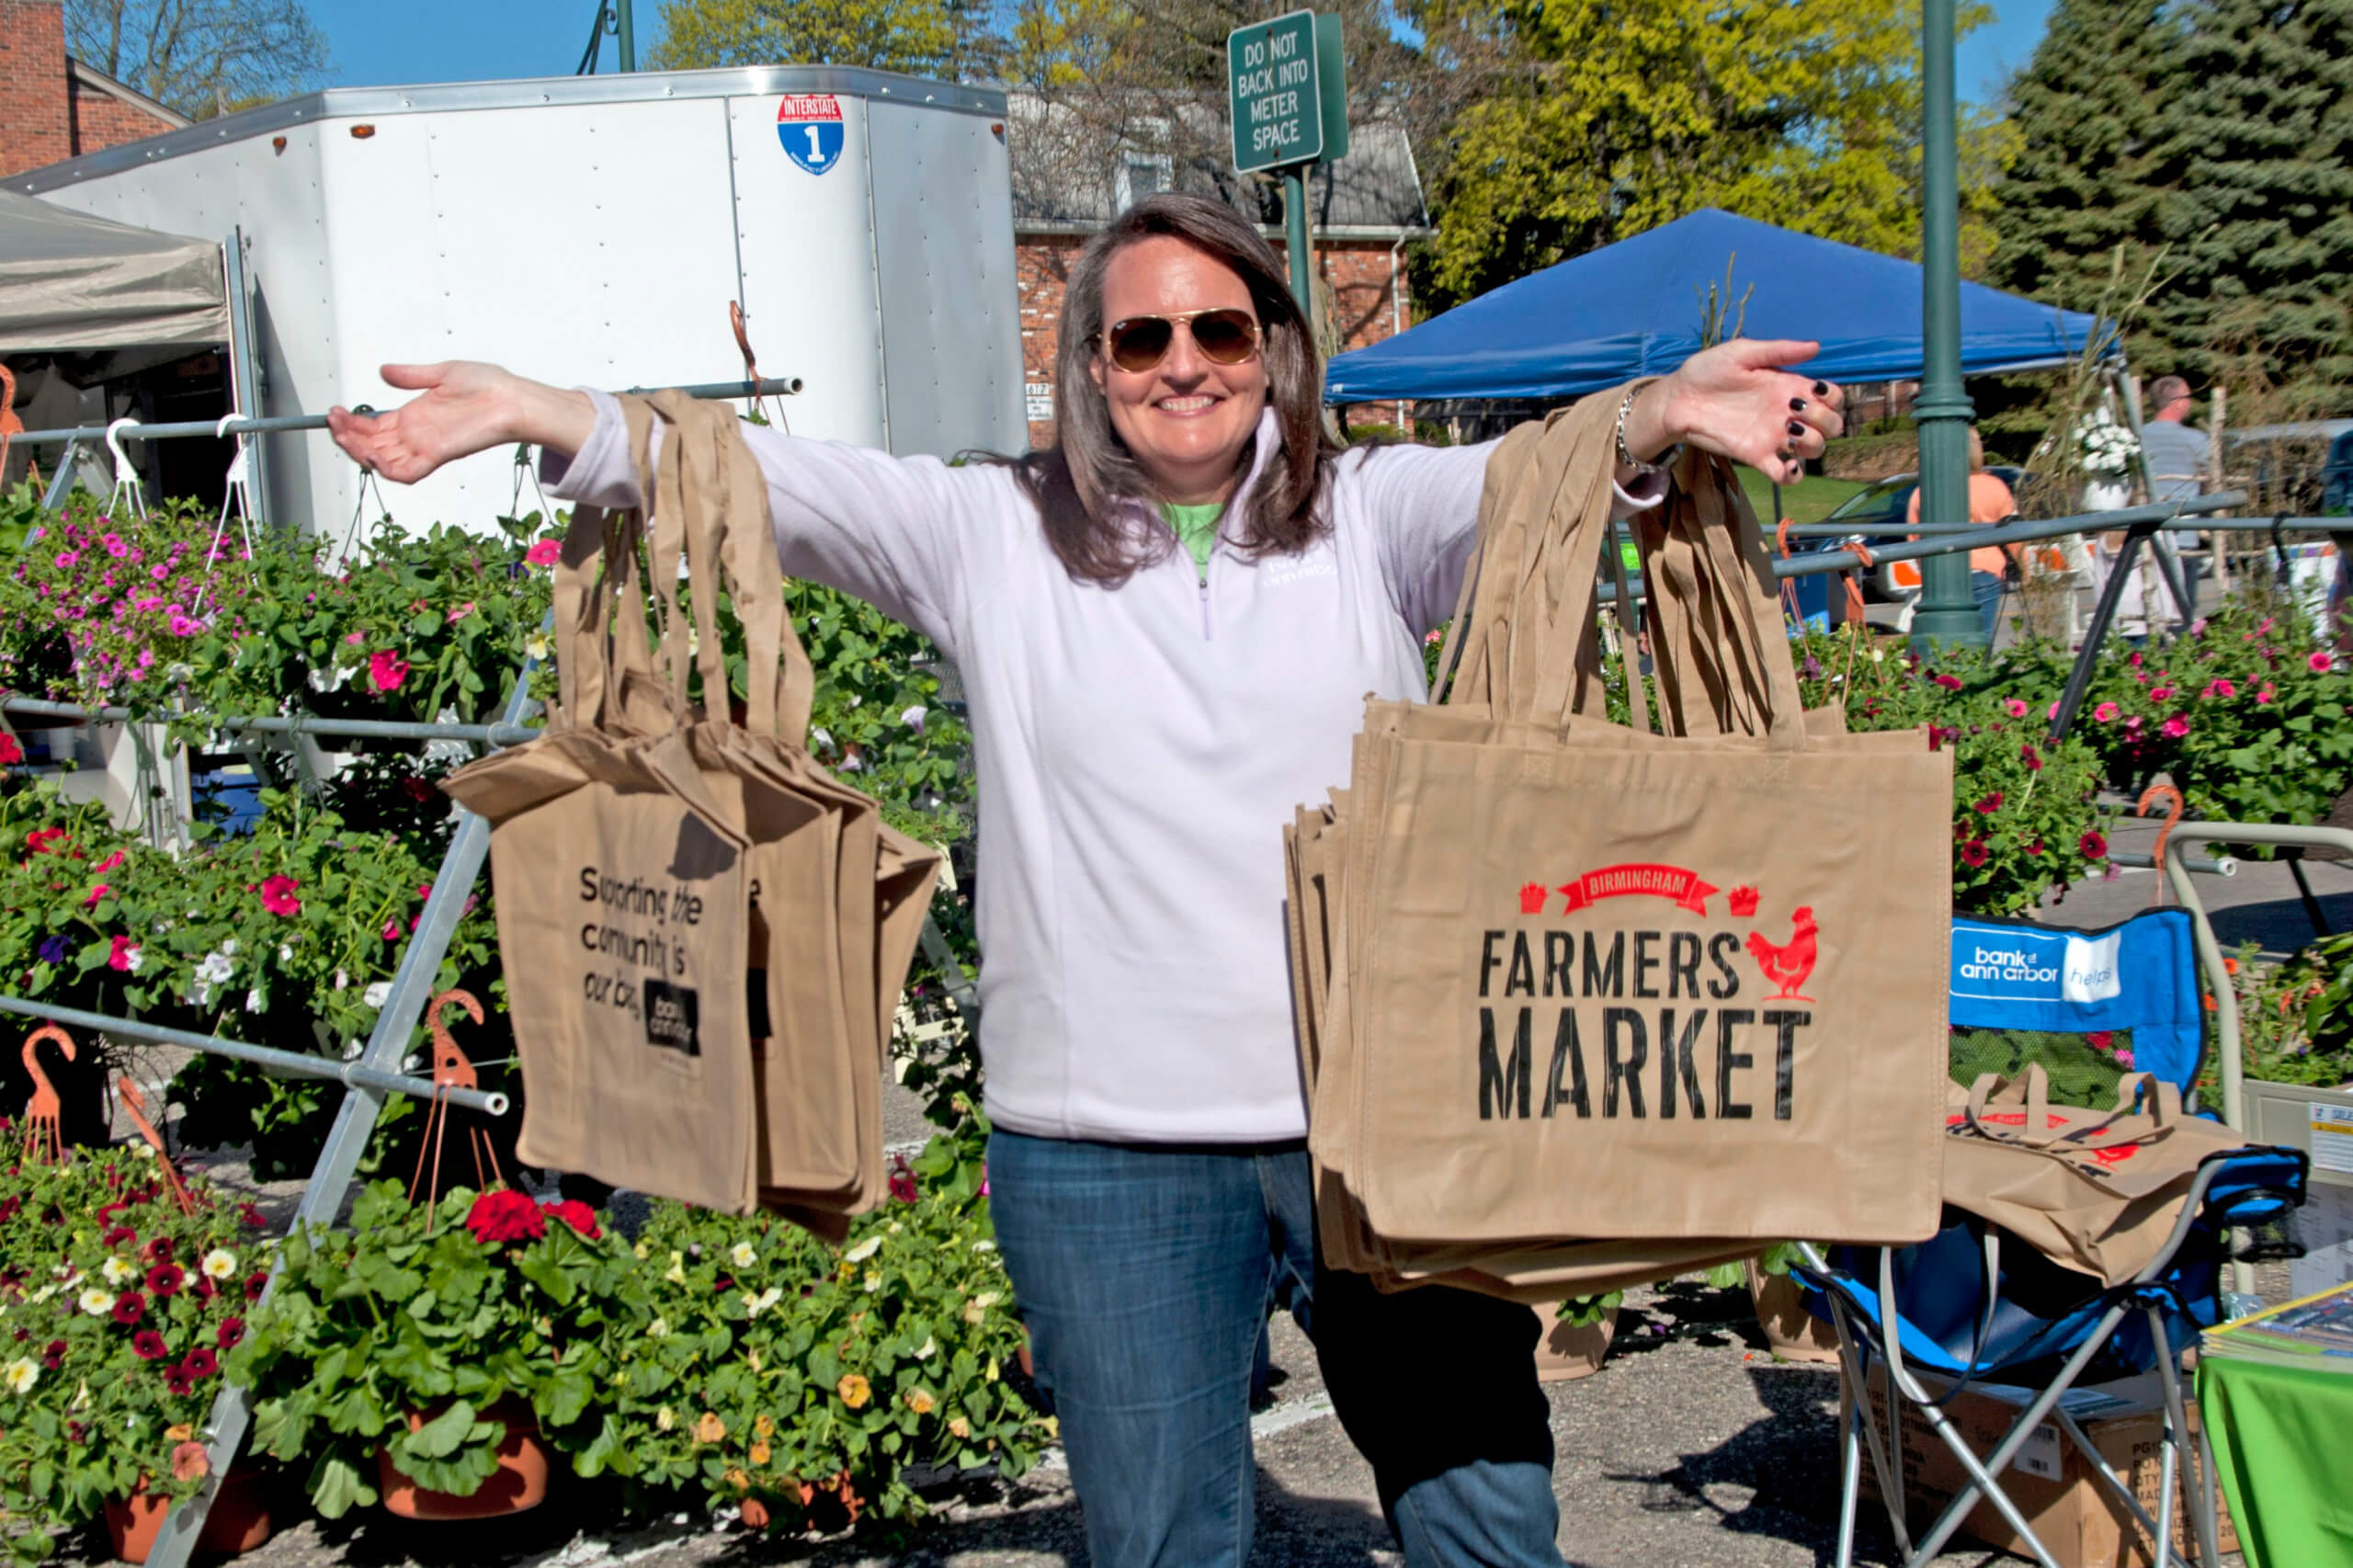 18th Annual Birmingham Farmer's Market Opening Day